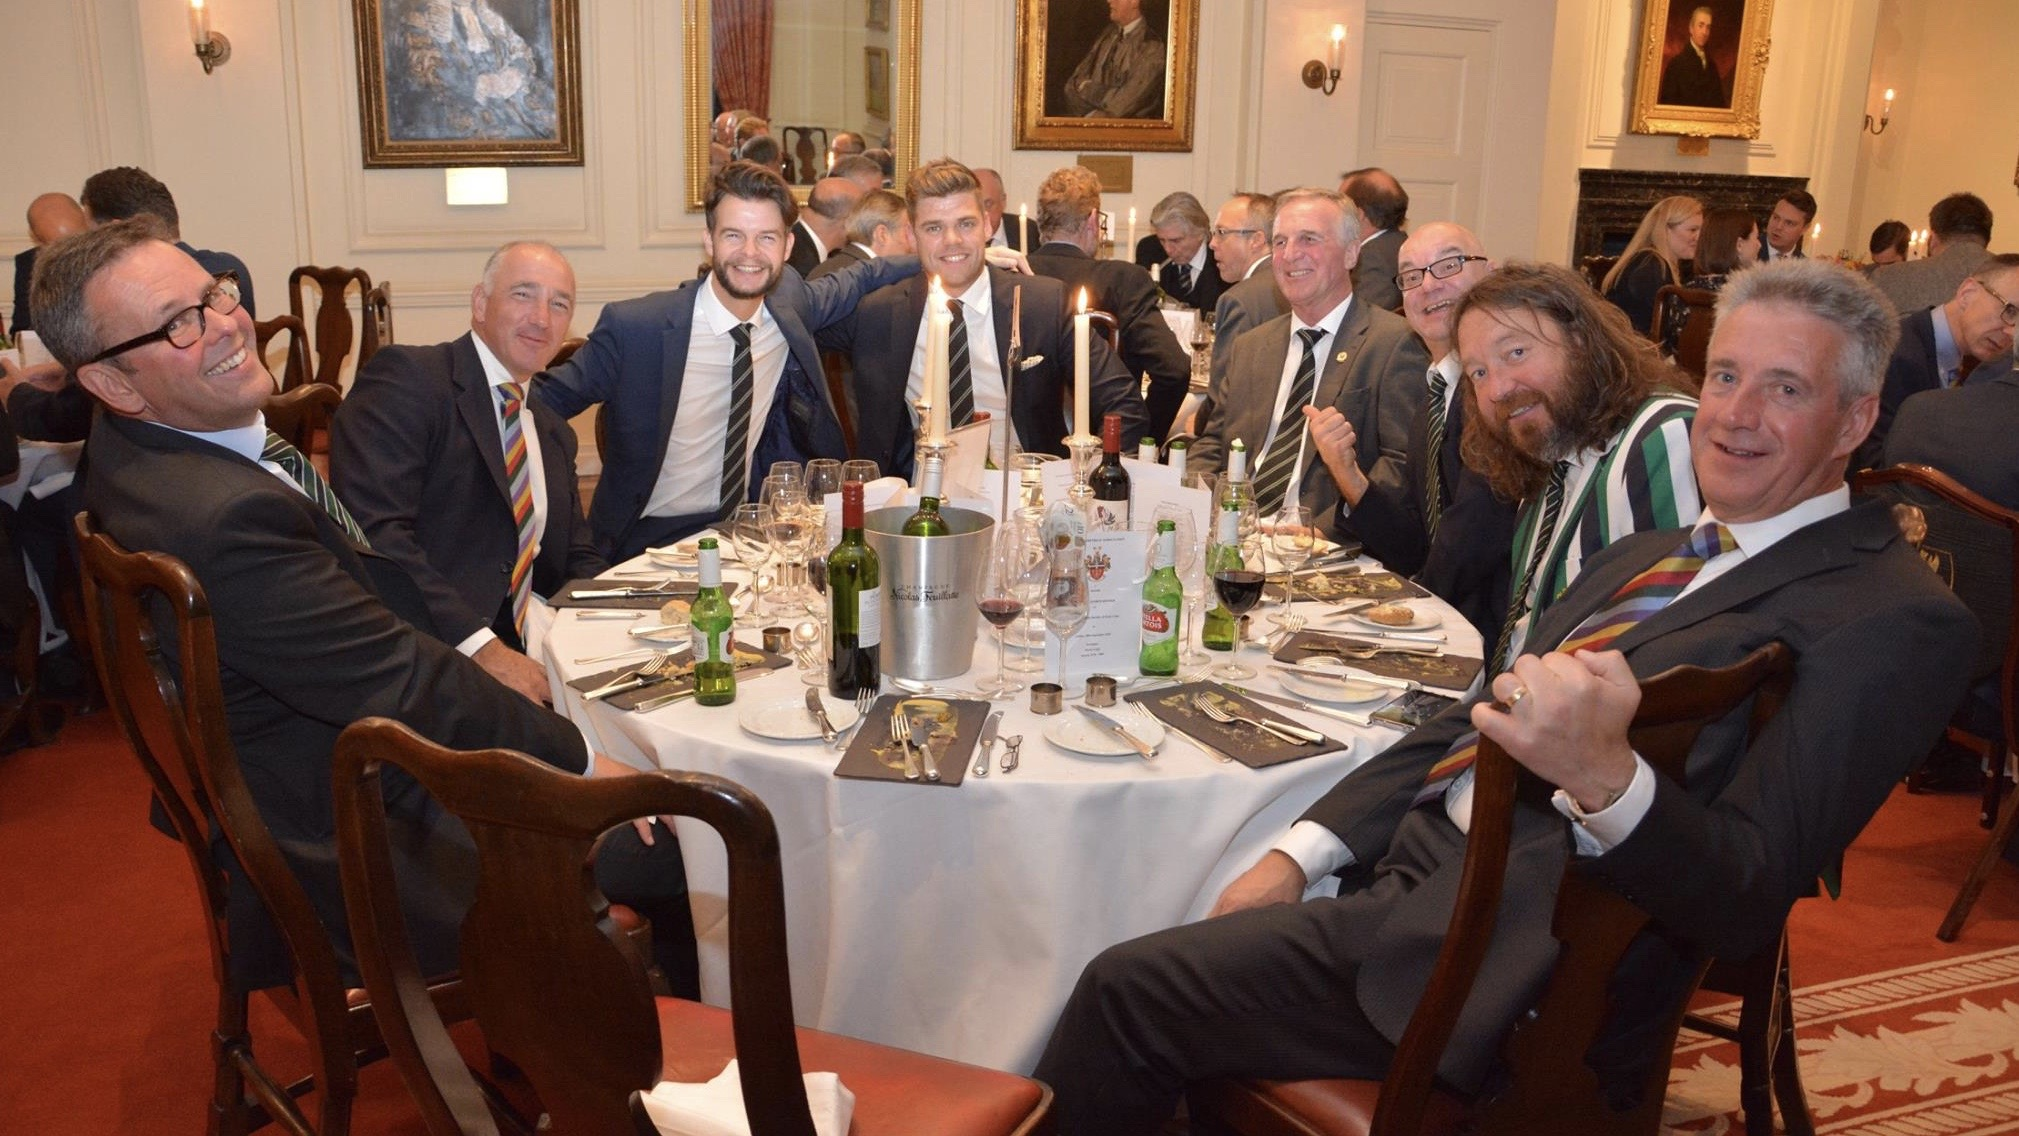 Attendees at a London Dinner event